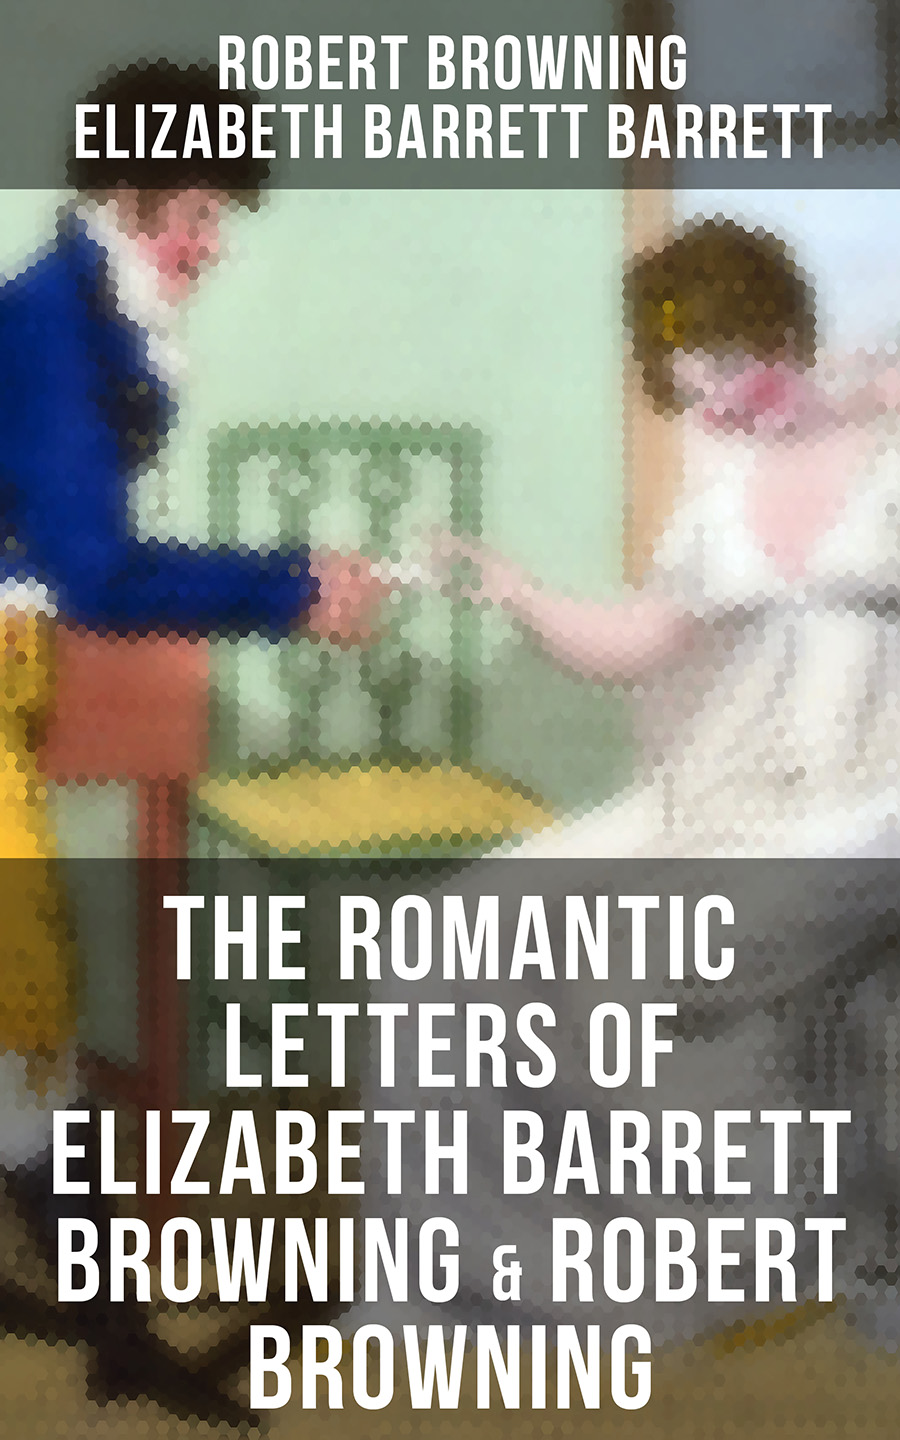 Robert Browning The Romantic Letters of Elizabeth Barrett Browning & Robert Browning browning lm339 d 5 20 kb20